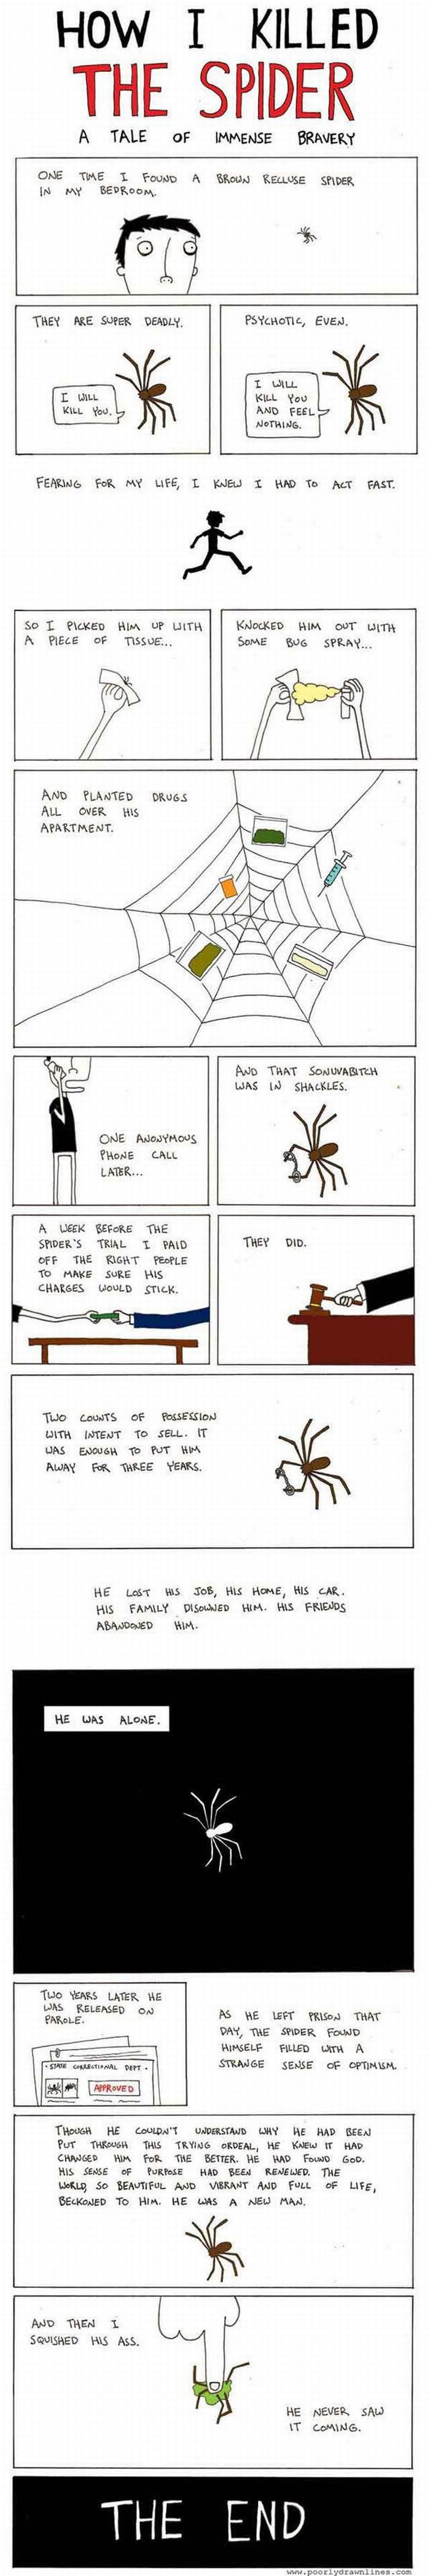 How I Killed the Spider (1 pic)